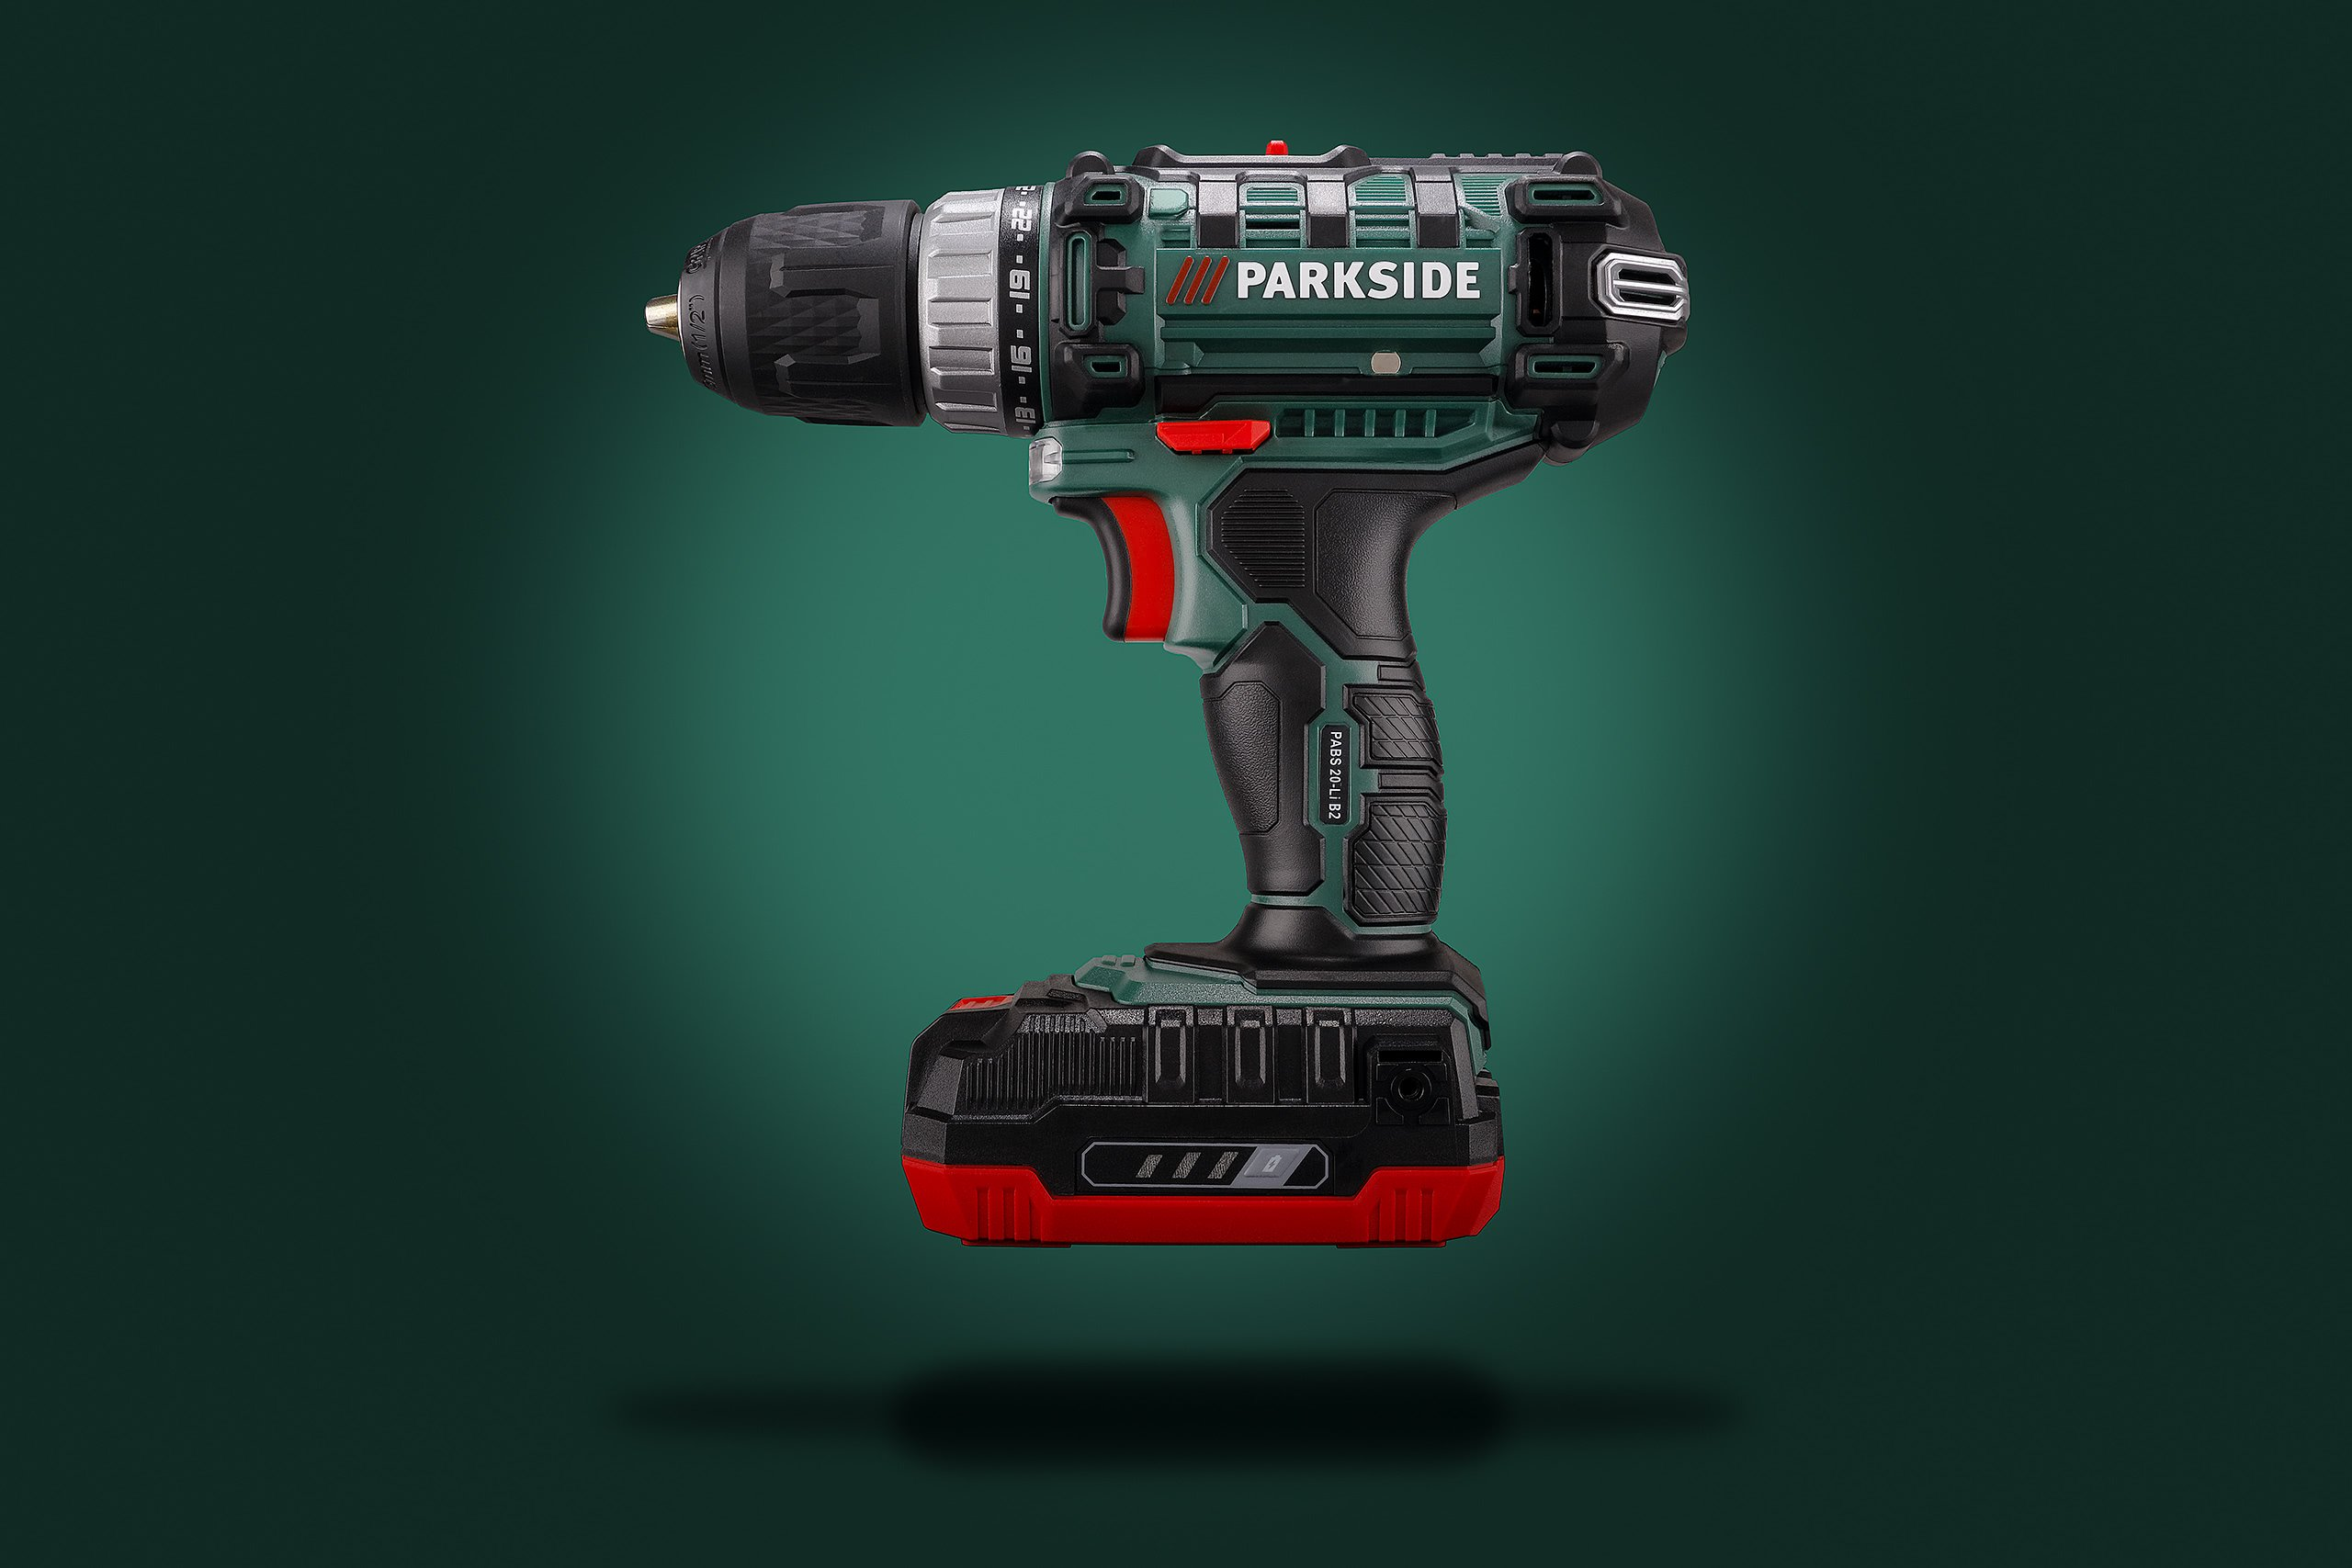 tools product photography